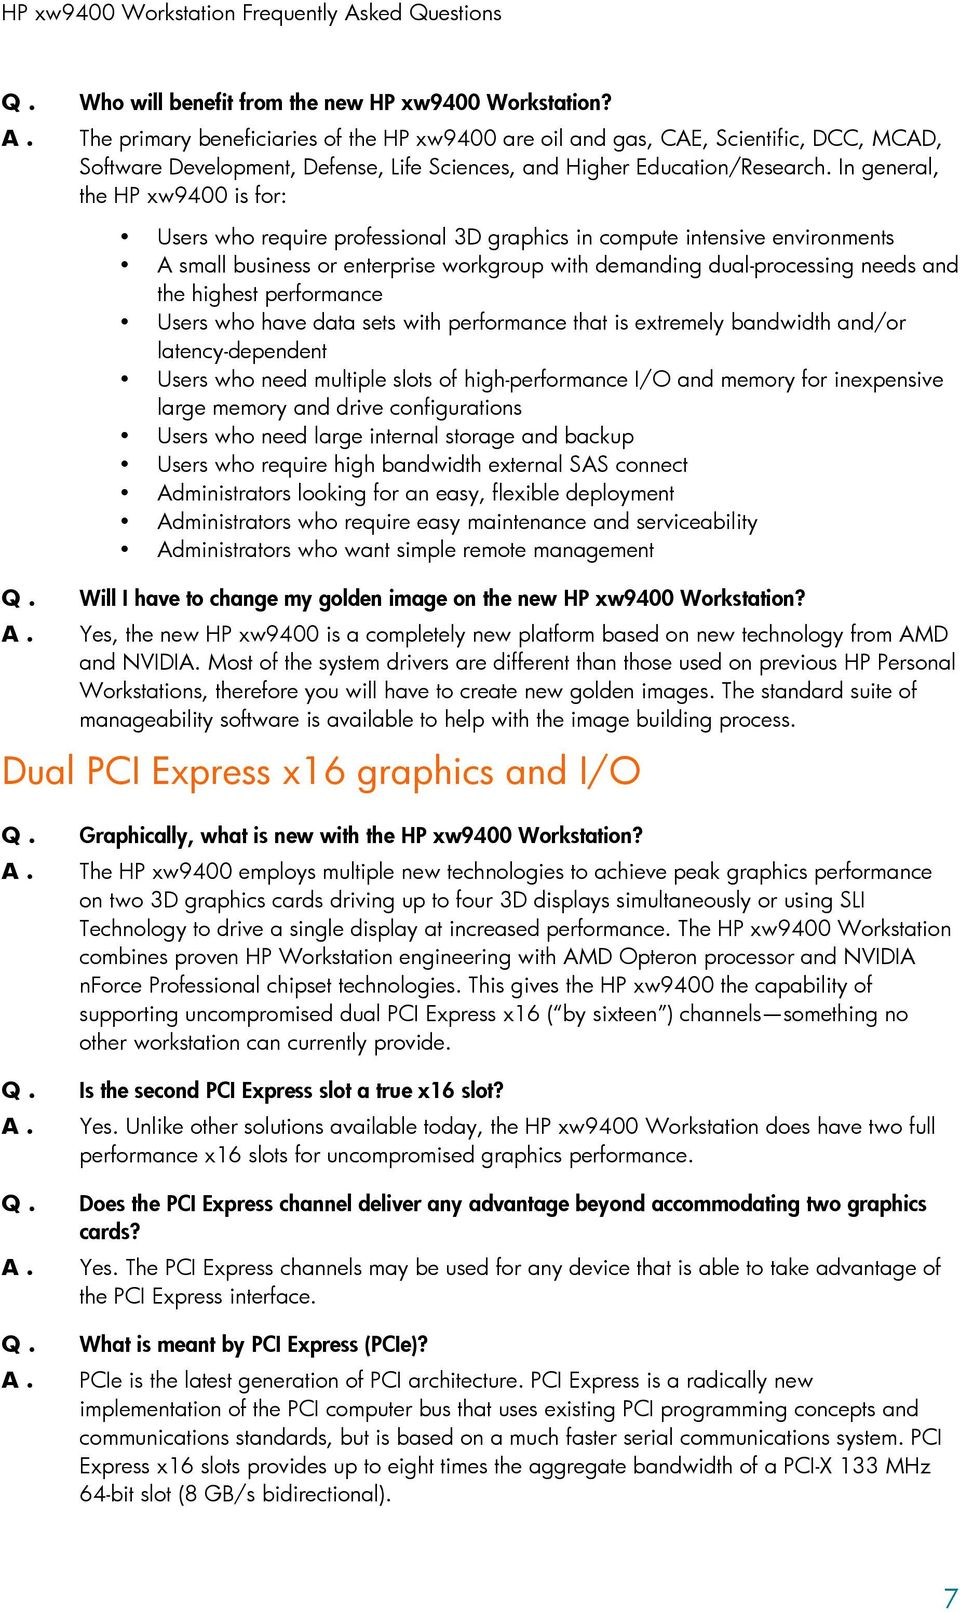 HP xw9400 Workstation  Frequently Asked Questions  Index